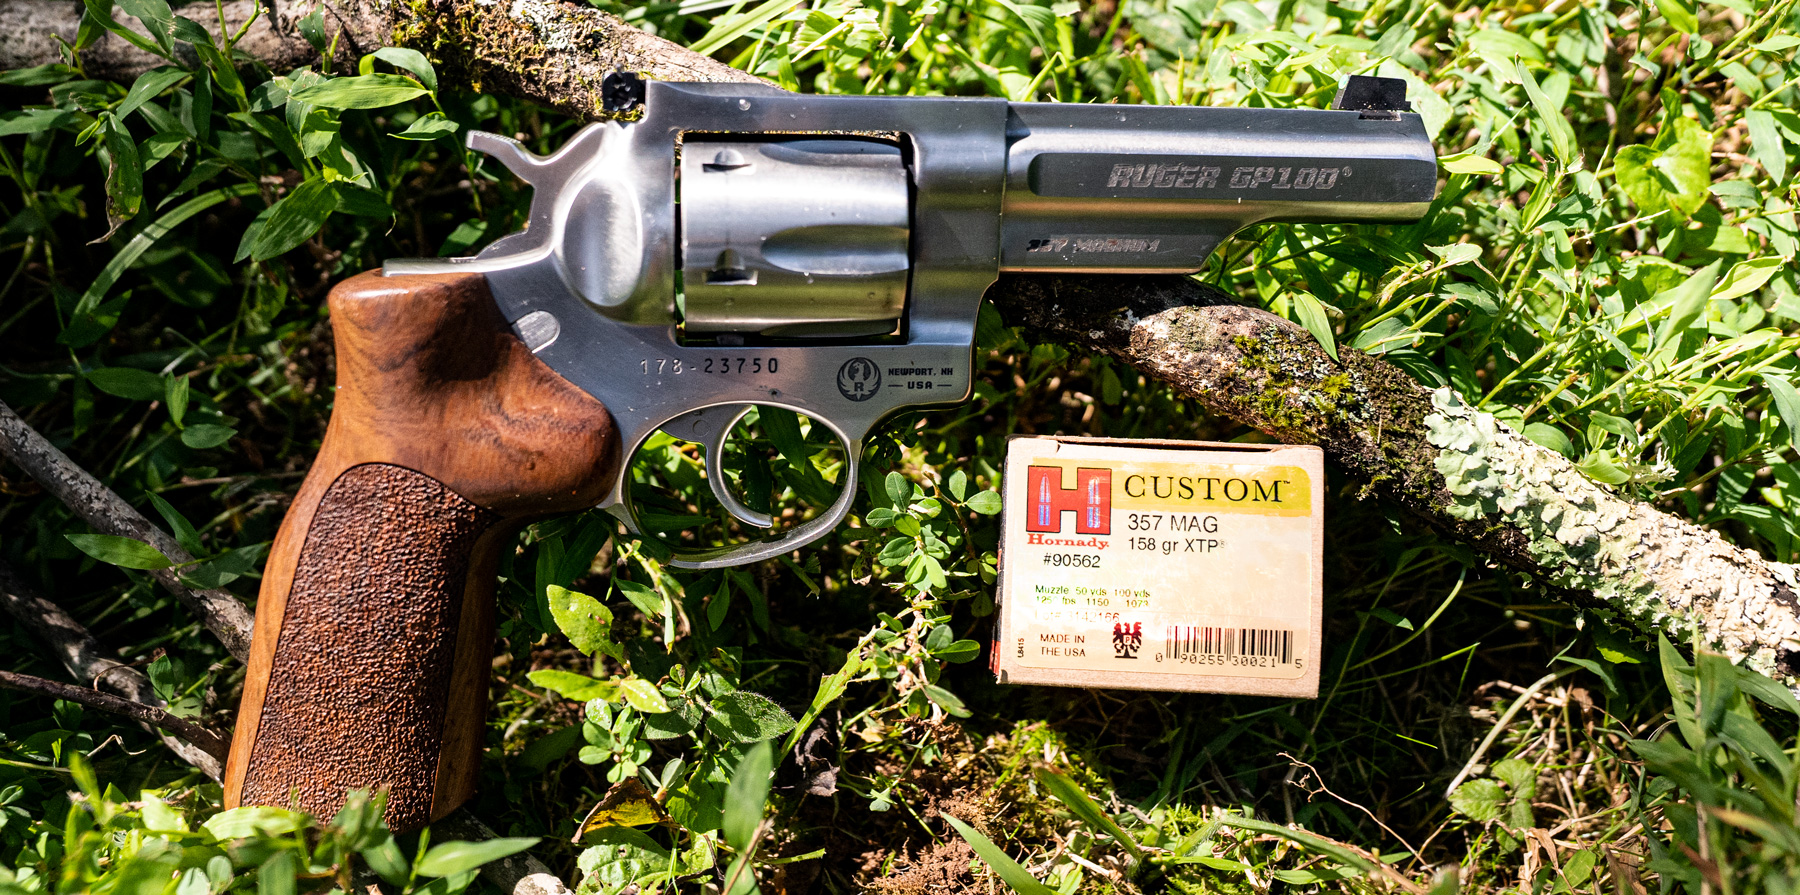 Ruger 357 magnum revolver with Hornady ammo